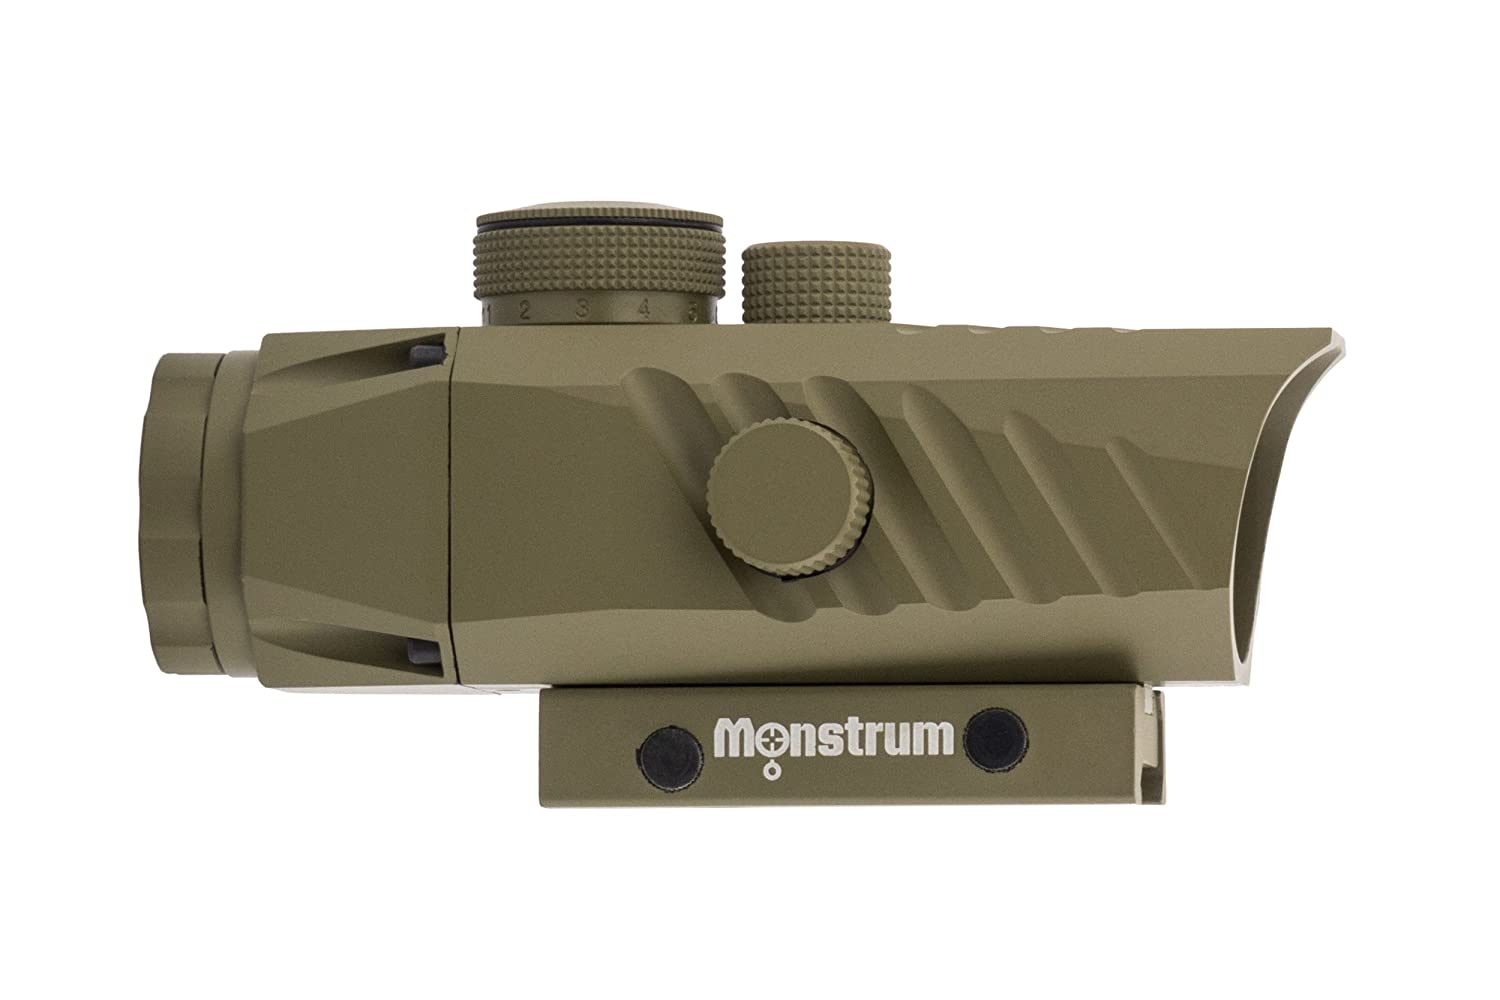 Monstrum P330-B Marksman 3X Prism Scope blmoha6213453